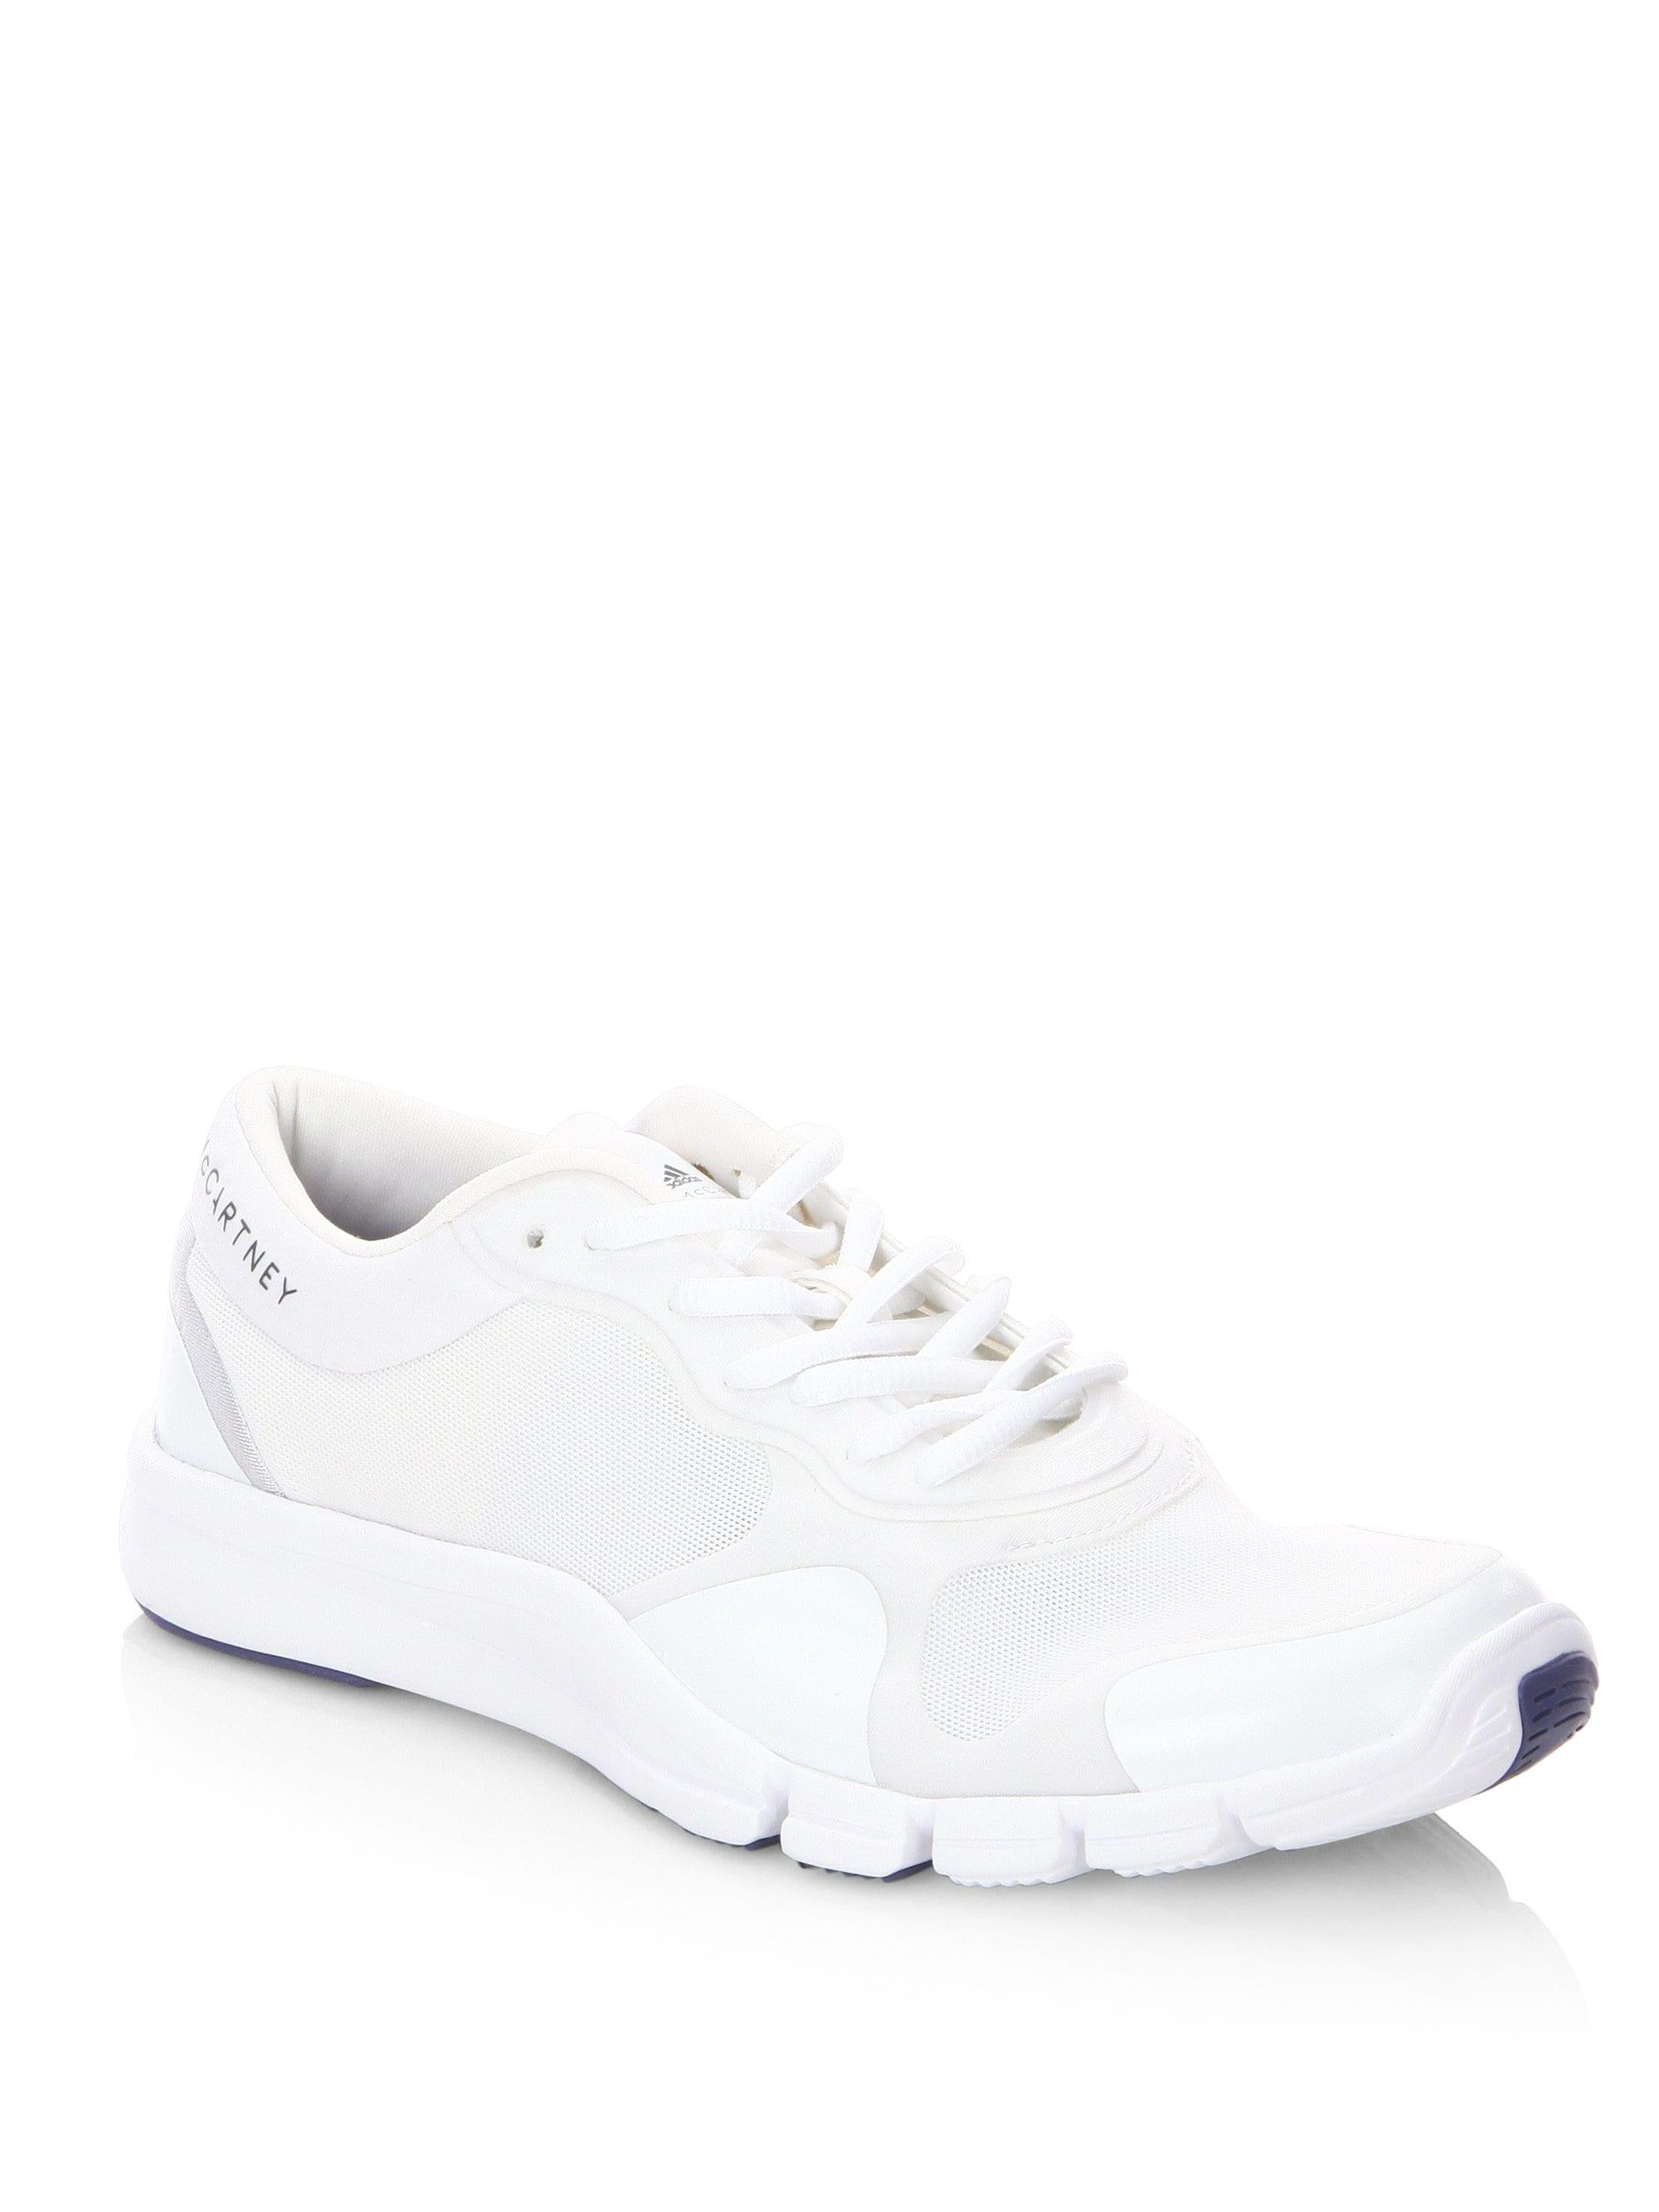 86a69e60118a adidas By Stella McCartney Adipure Trainer Sneakers in White - Save ...